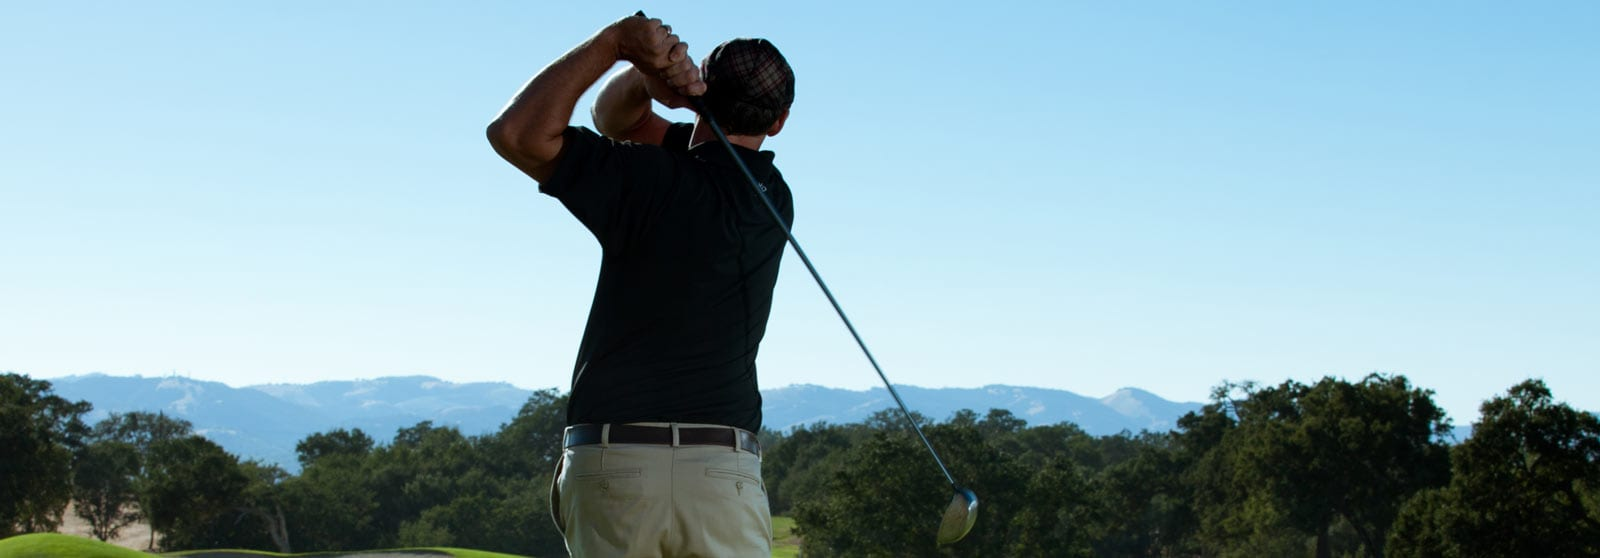 our central Paso Robles location includes boating, fishing and golfing